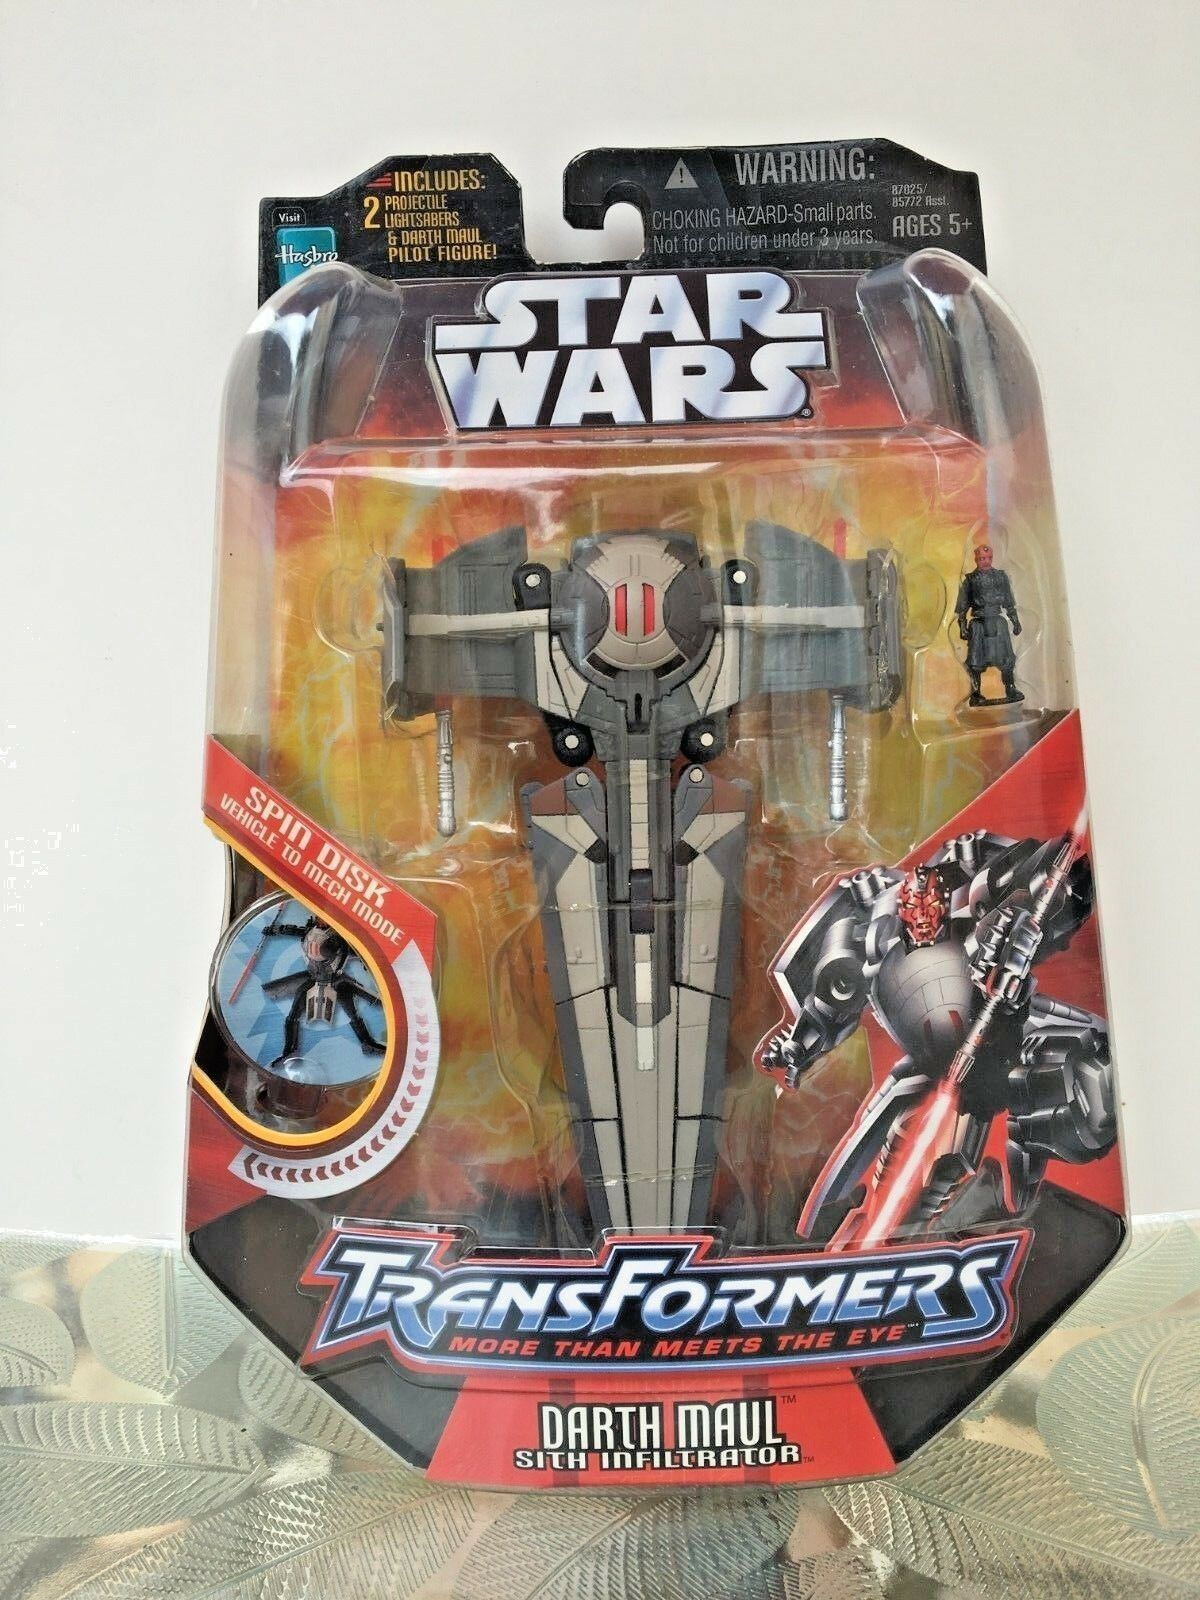 Star Wars Transformers Darth Maul Sith Infiltrator Hasbro NIP